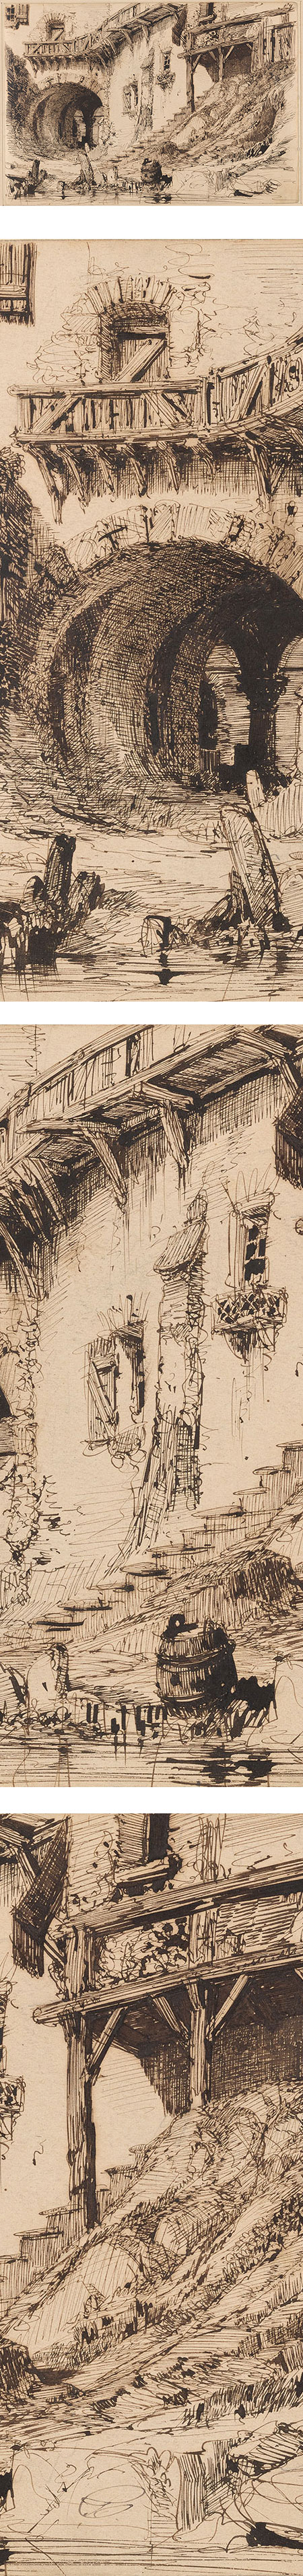 Ancient Structure Beside a Stream, Carlo Ferrario ink drawing